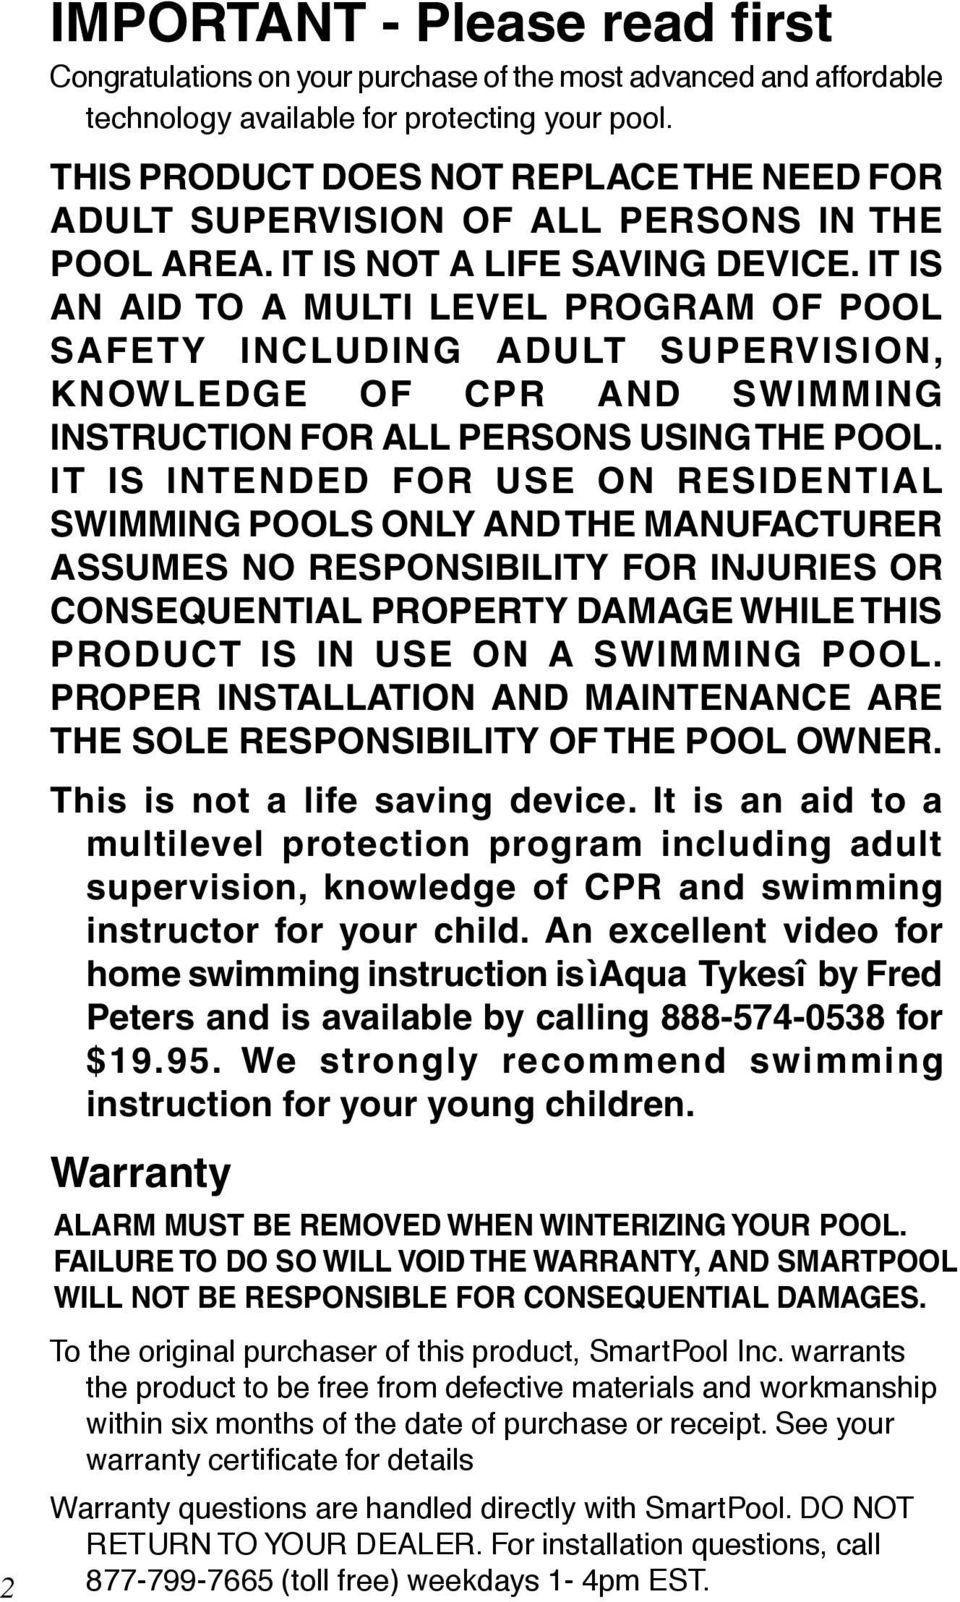 IT IS AN AID TO A MULTI LEVEL PROGRAM OF POOL SAFETY INCLUDING ADULT SUPERVISION, KNOWLEDGE OF CPR AND SWIMMING INSTRUCTION FOR ALL PERSONS USING THE POOL.